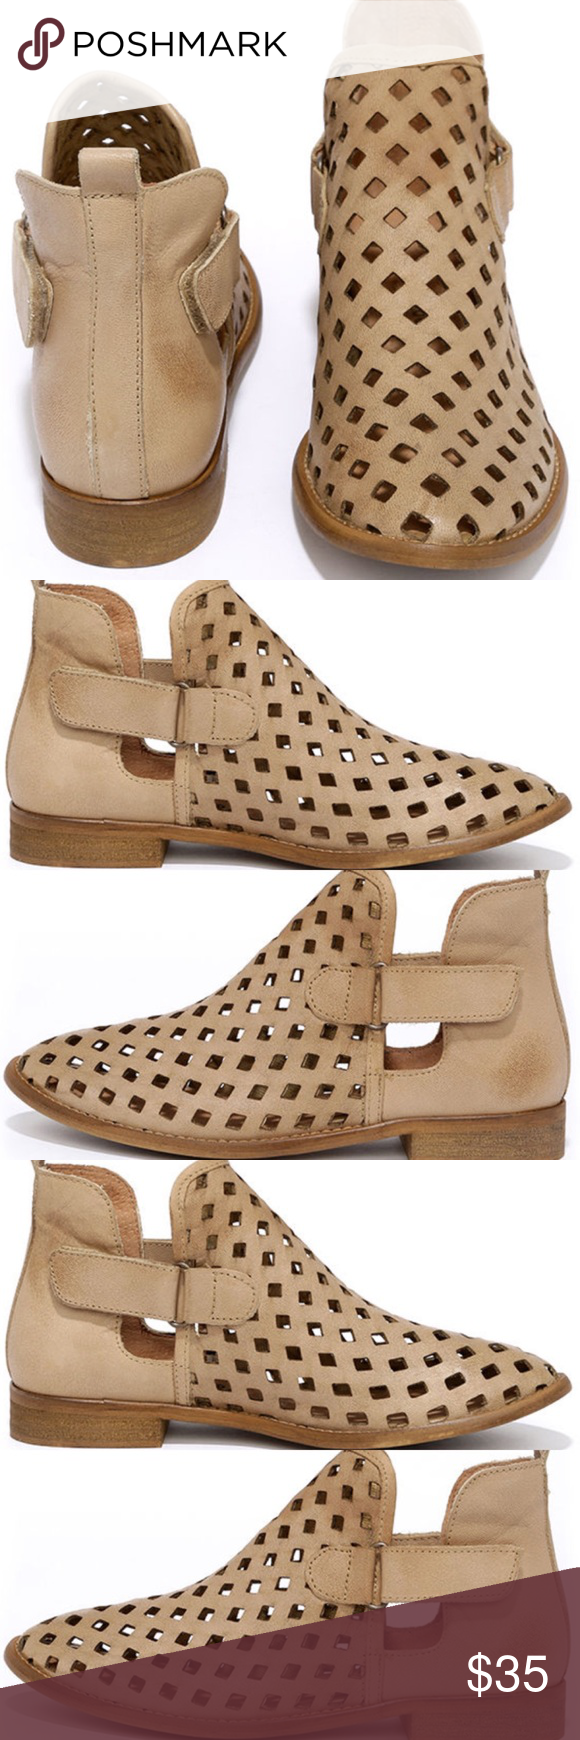 """Musse & Cloud Taupe Leather ankle boots These ankle booties have a leather cutout upper and almond toe. There is a cool cutout shaft with VELCRO fasteners on each side 1"""" block heel cushioned insole Musse & Cloud  Shoes Ankle Boots & Booties"""